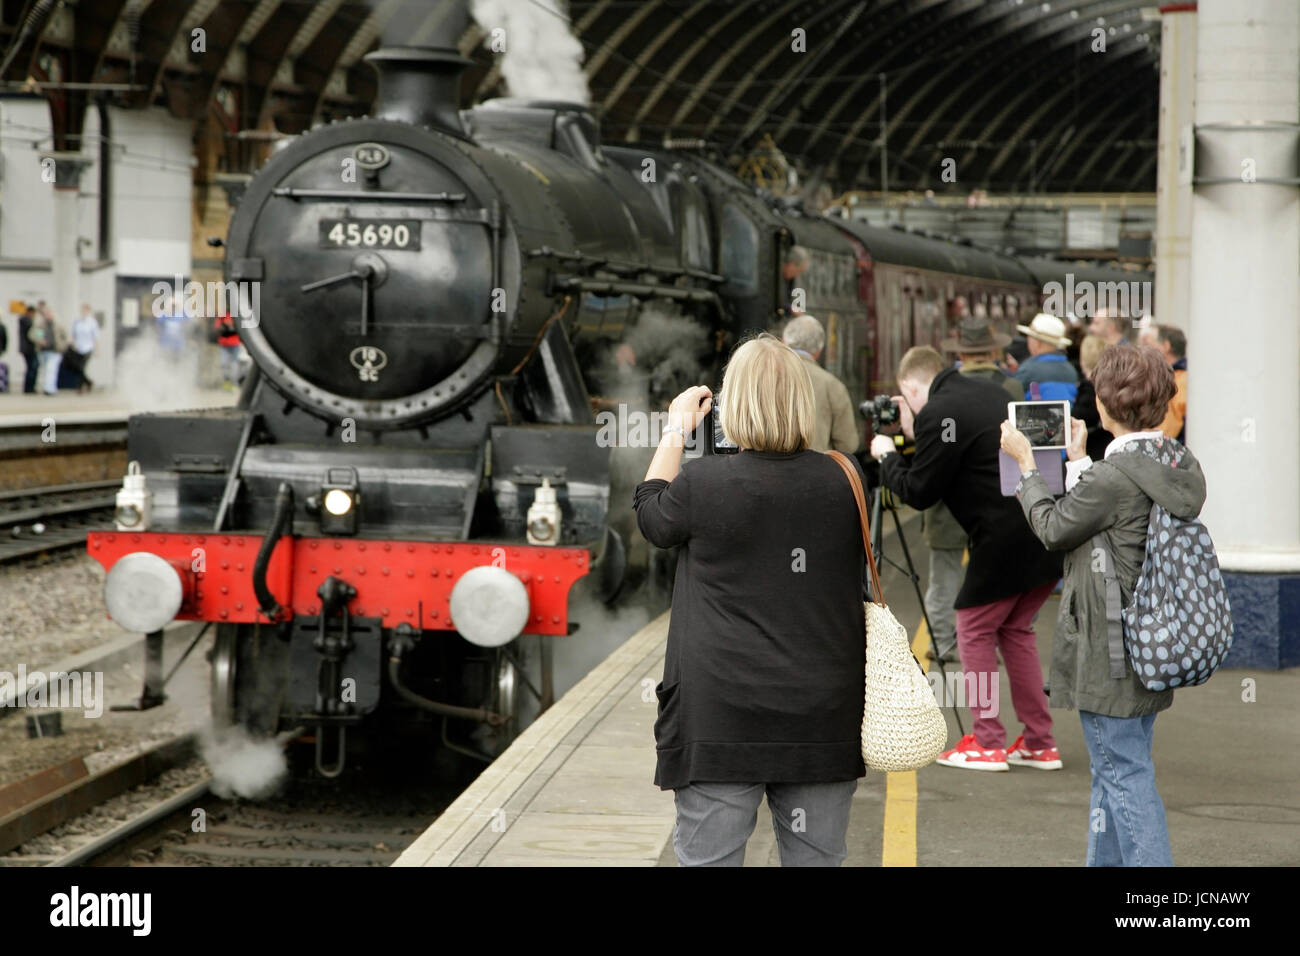 LMS Jubilee class steam locomotive 45690 'Leander' at York station, UK with the Scarborough Spa Express - Stock Image